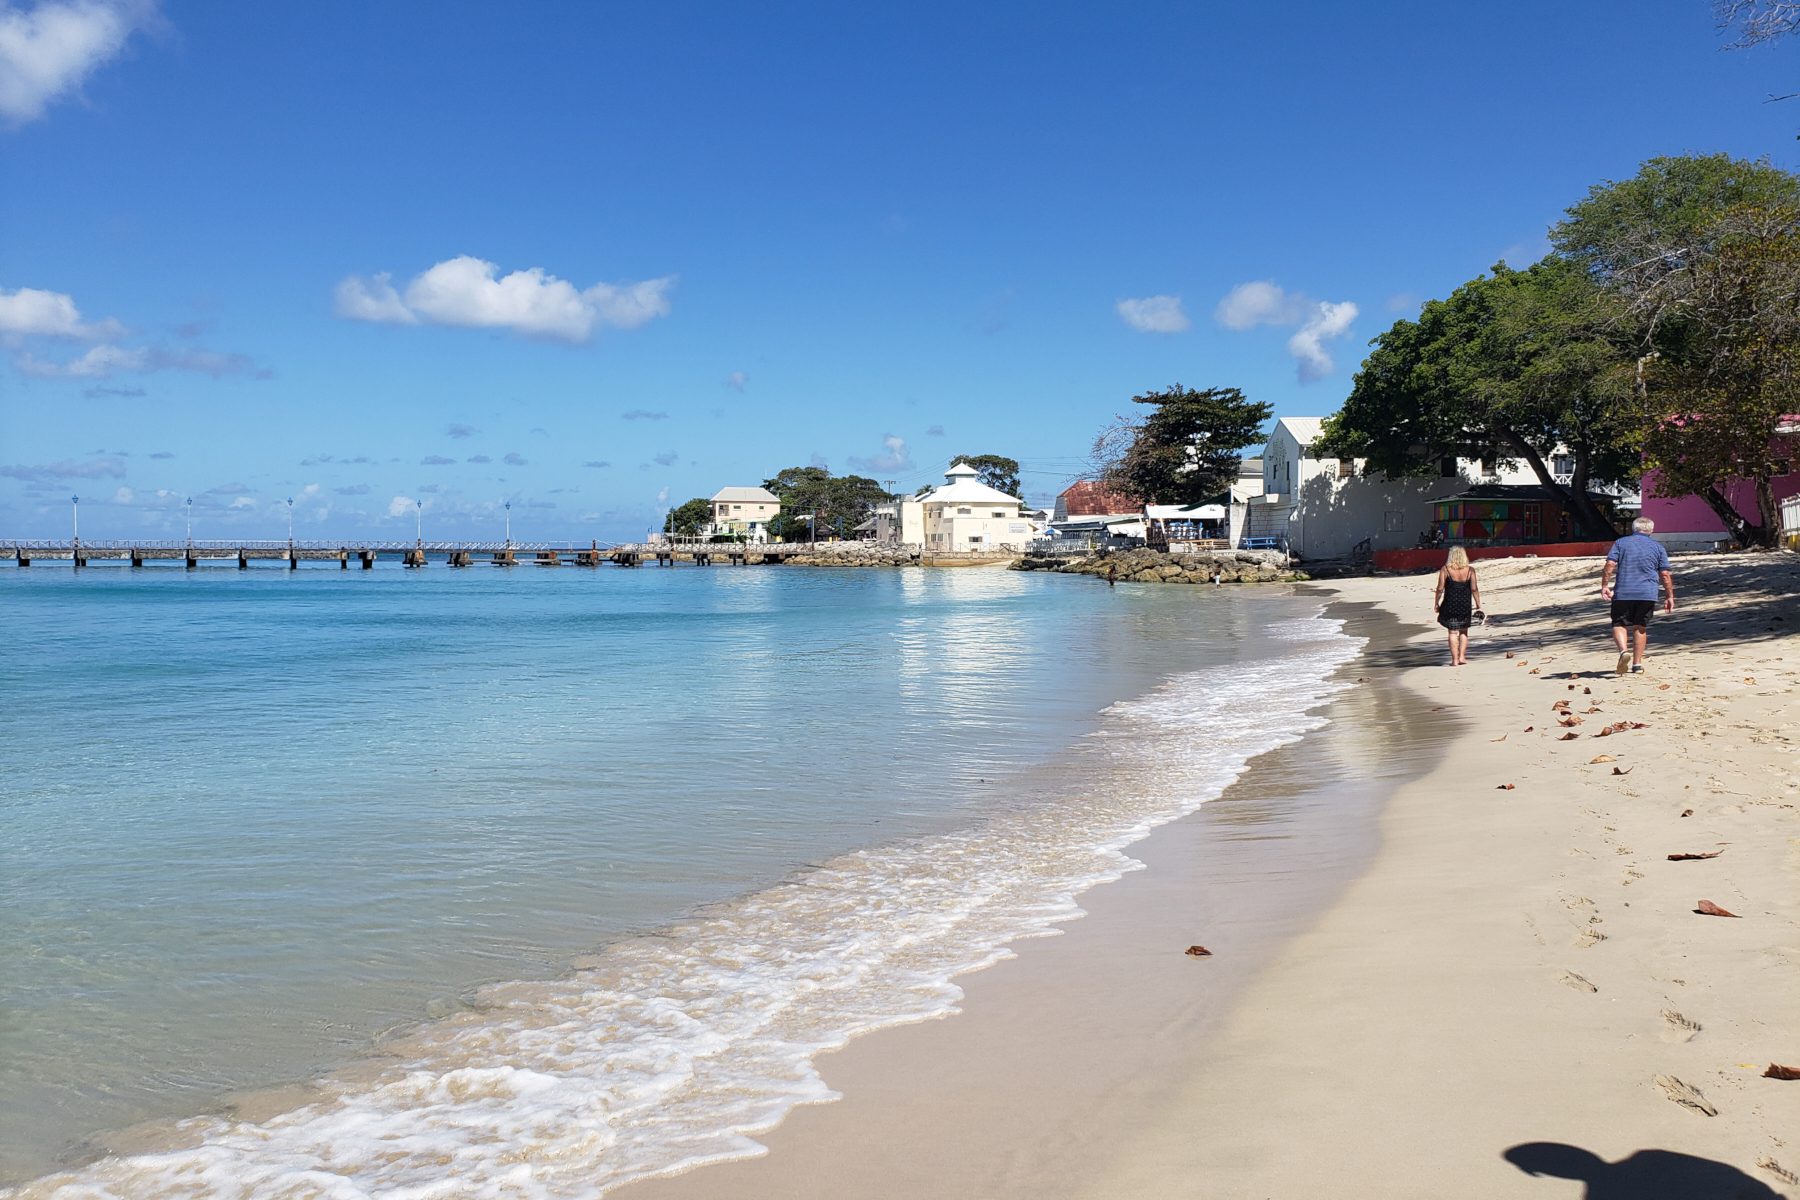 Jerry and Joy walking on the beach in Speightstown